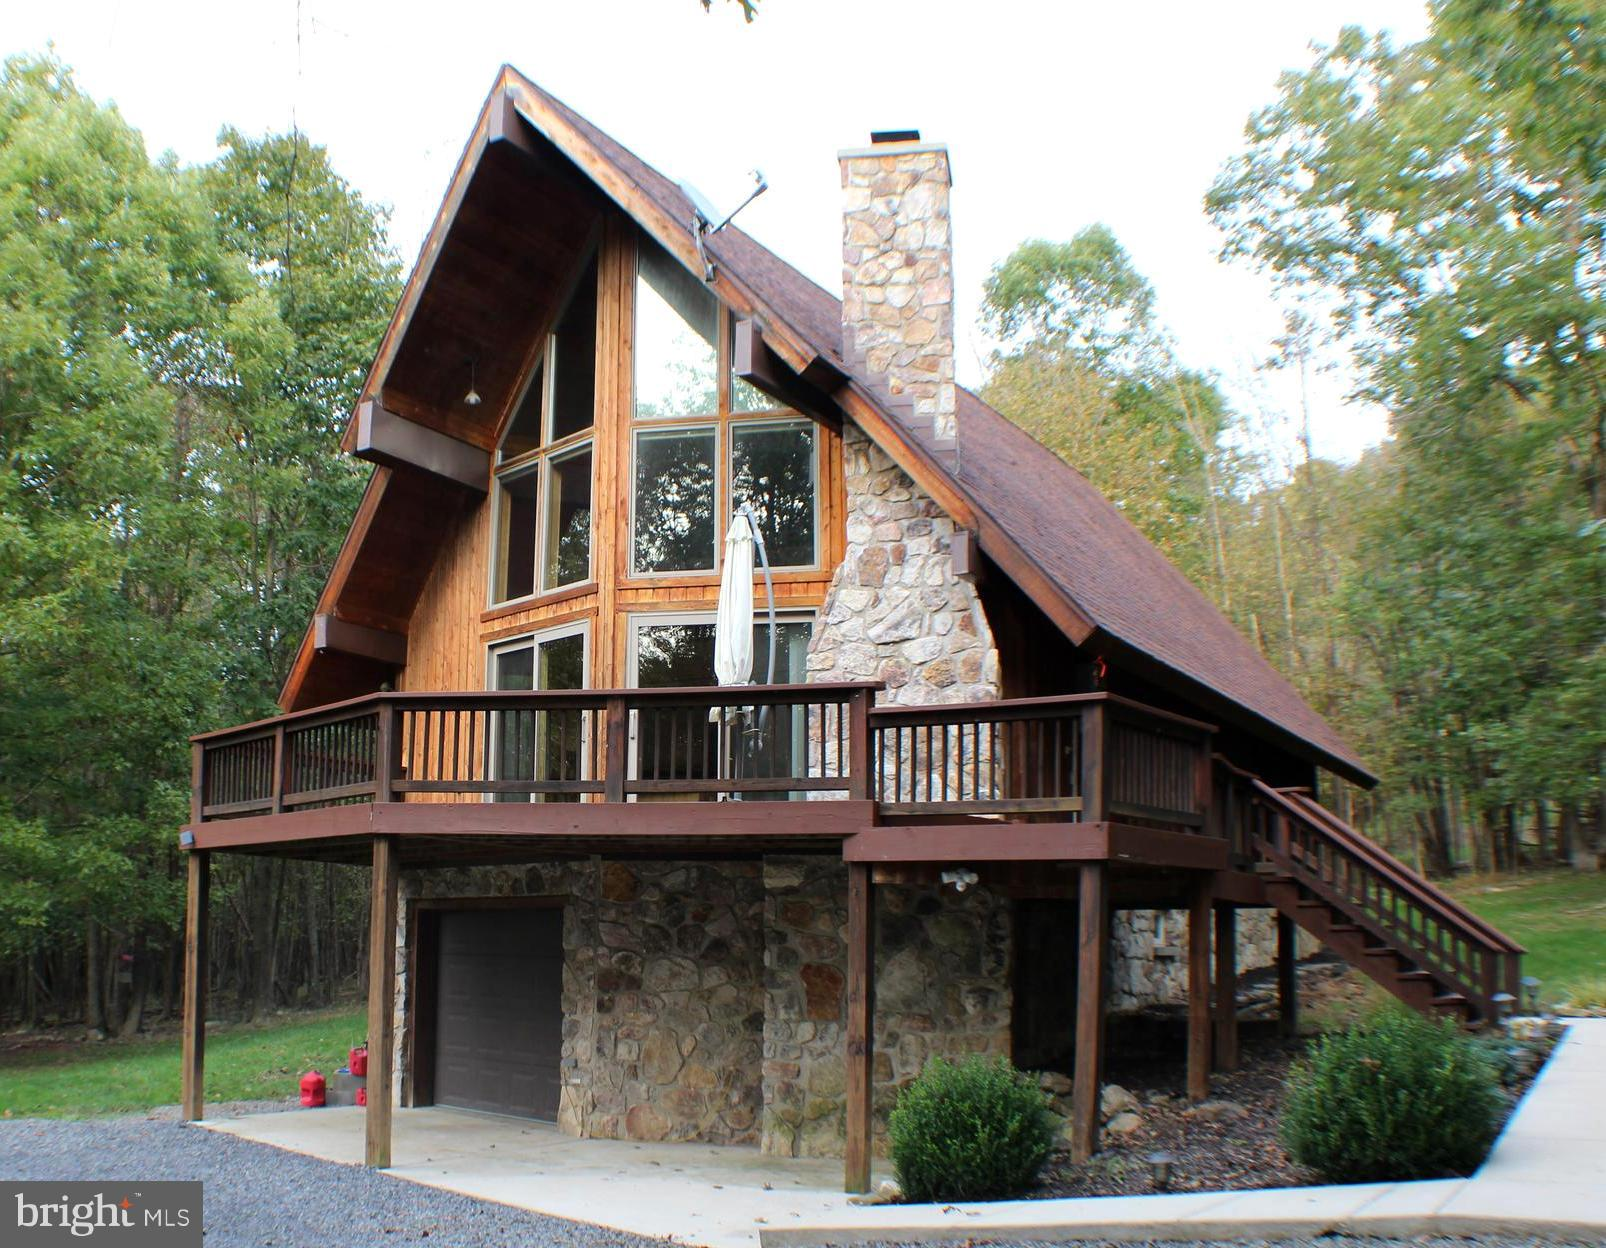 40 PINEVIEW ROAD, MAYSVILLE, WV 26833